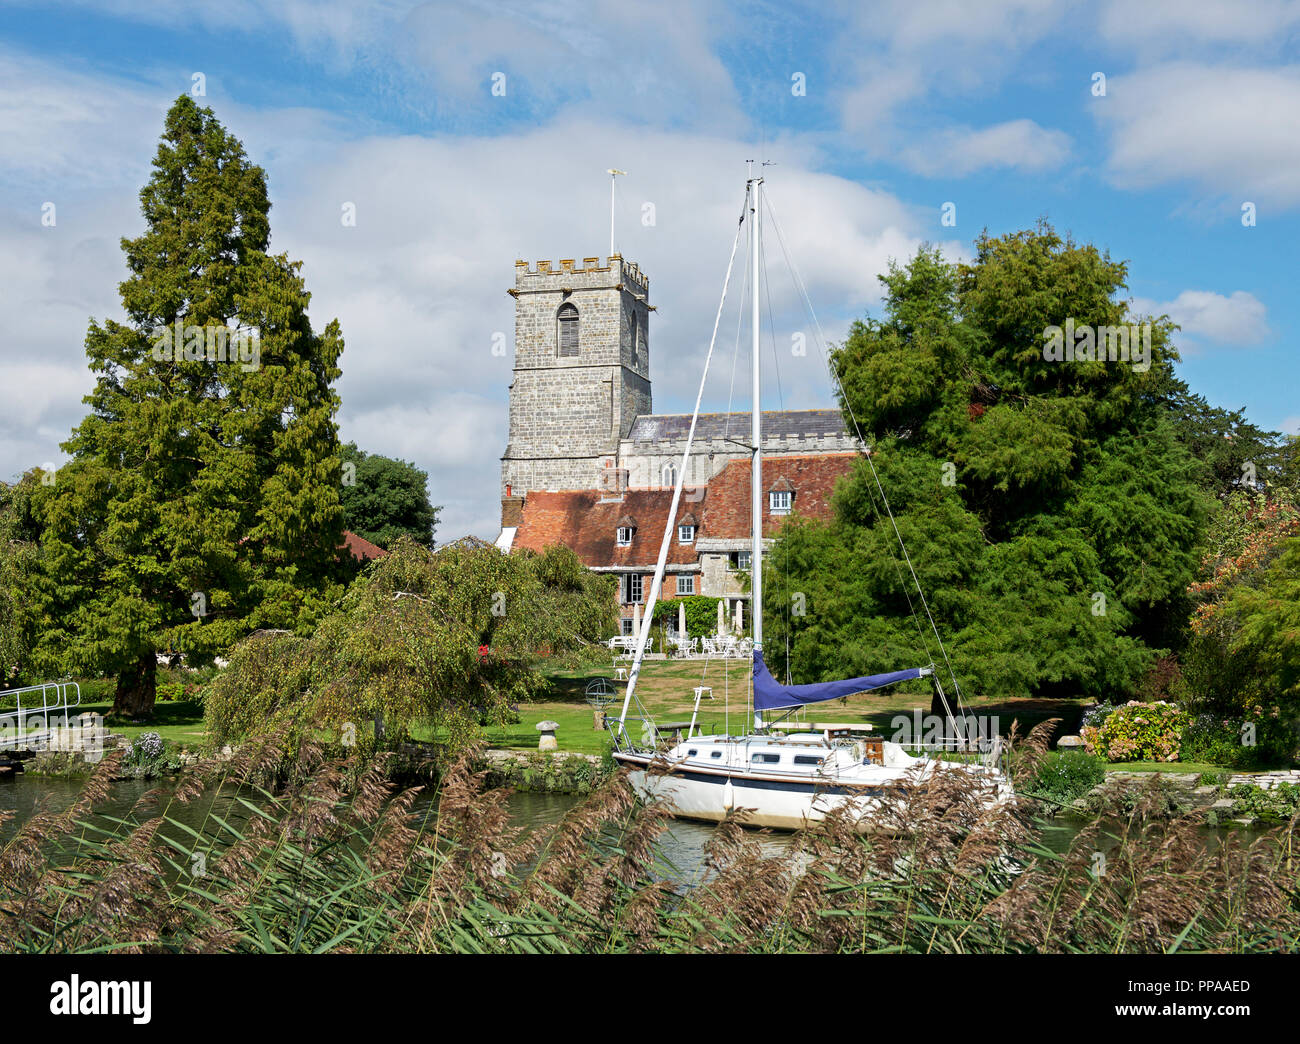 Sailing boat on River Frome, and Lady St Mary Church, Wareham, Dorset, England UK - Stock Image